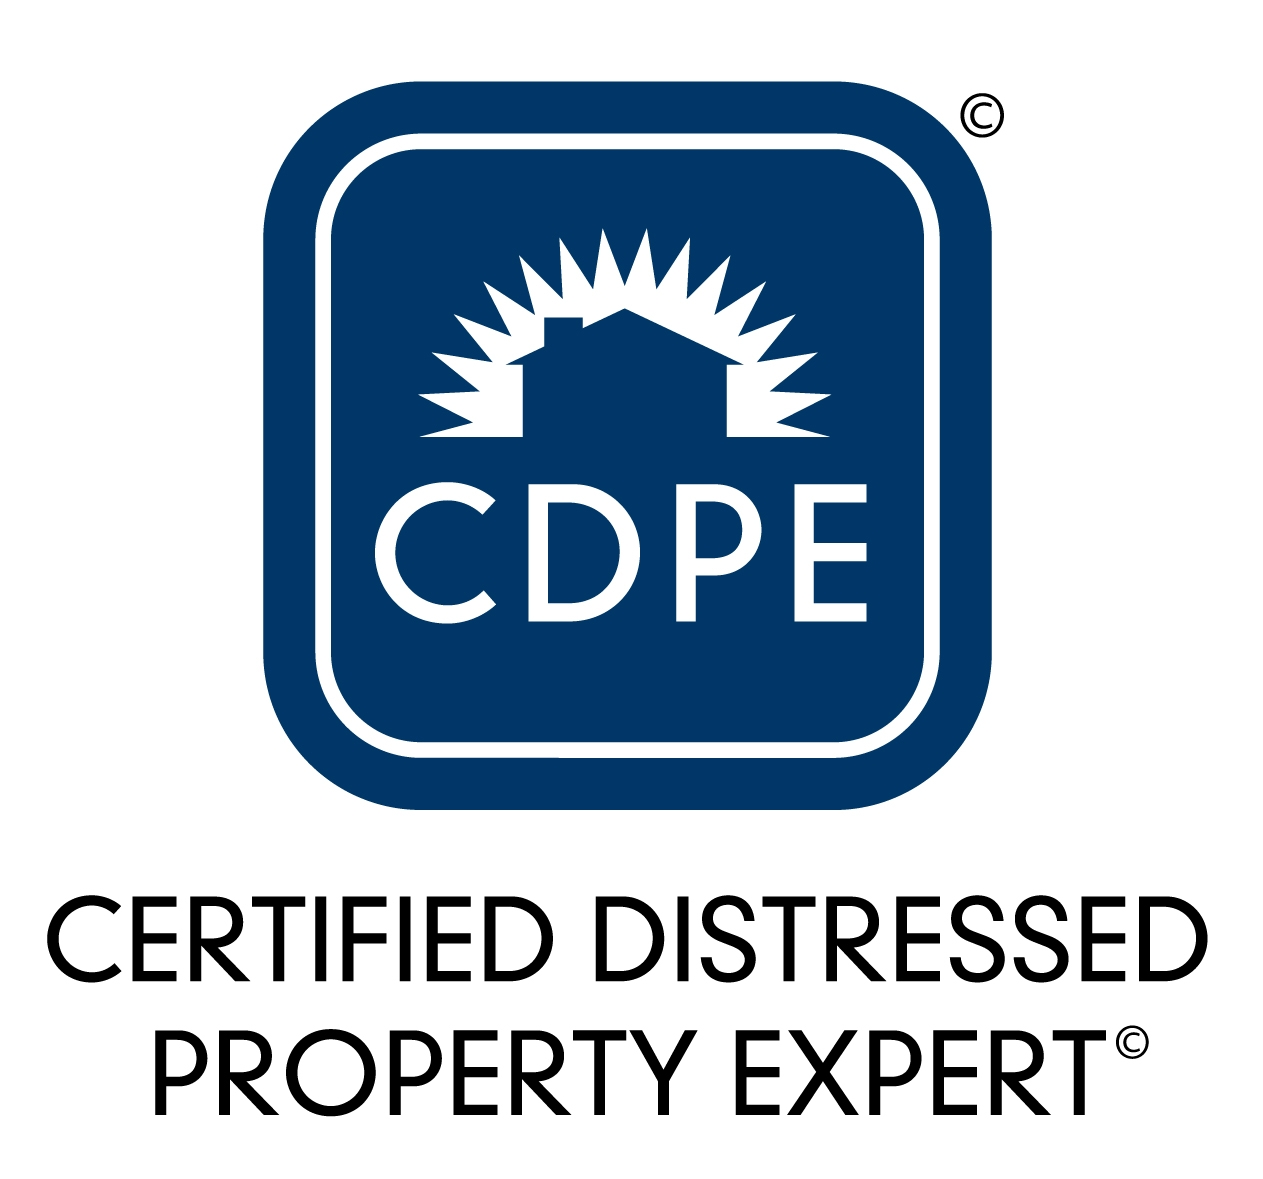 Certified Distressed Property Experts Realtors